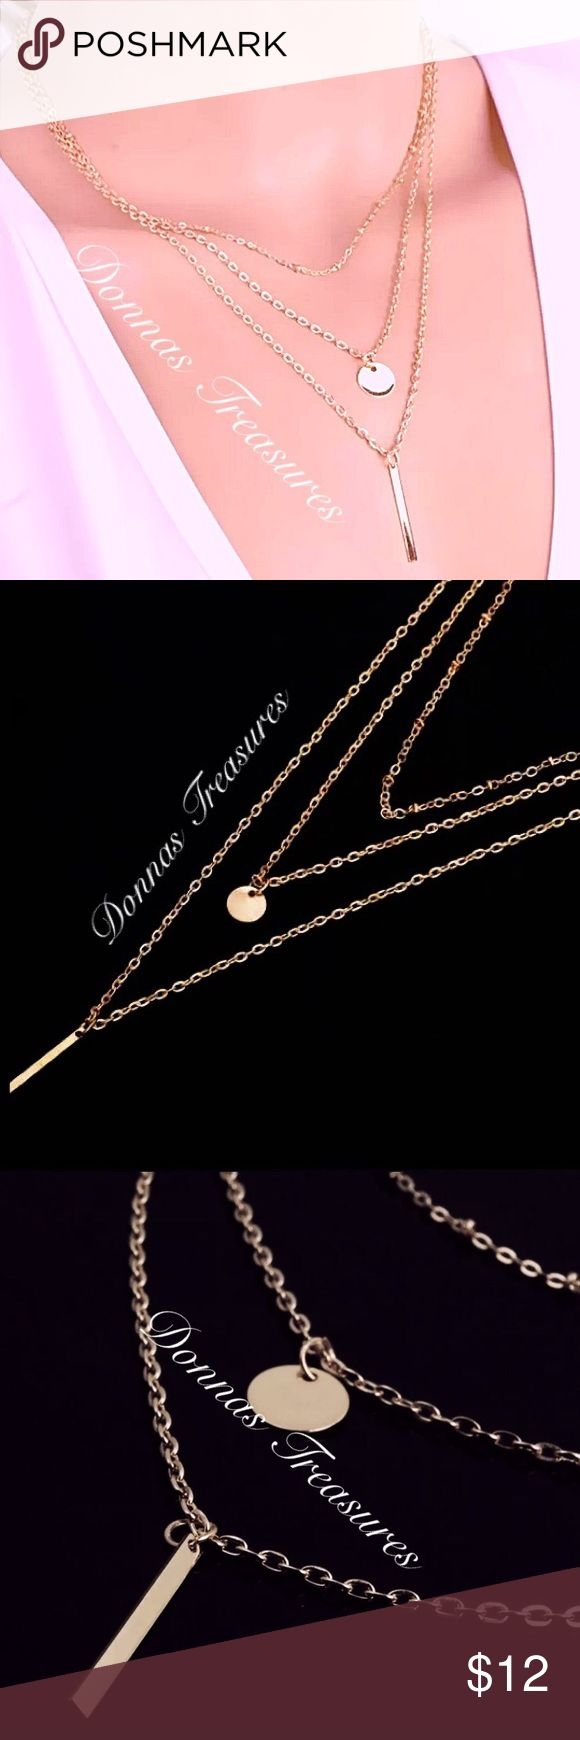 """🍀Triple Layer Rose Gold Necklace This ultra trendy necklace is Rose Gold Plating over nickel free alloy. The plain chain is 7.5"""" long. The coin chain is 9.5"""" with an additional 1/4"""" long coin. The bar chain is 12"""" with an additional 1.25"""" bar. There's also a 2"""" long extension chain making this great for all sized necks! Jewelry Necklaces"""